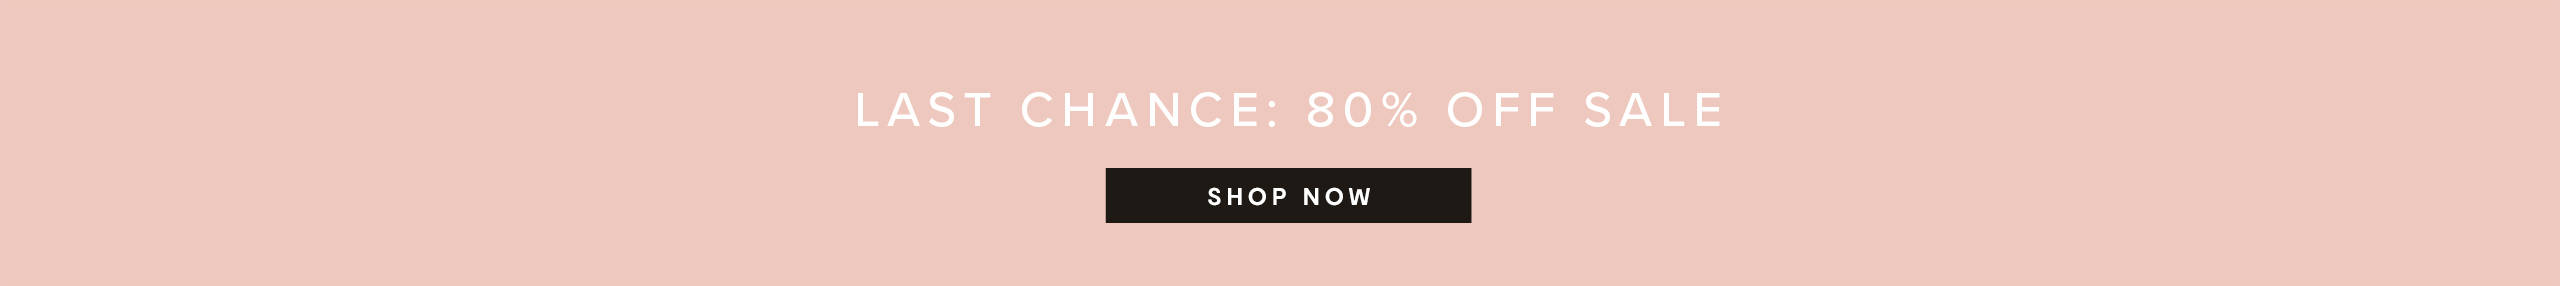 Last Chance: 80% Off Sale Items